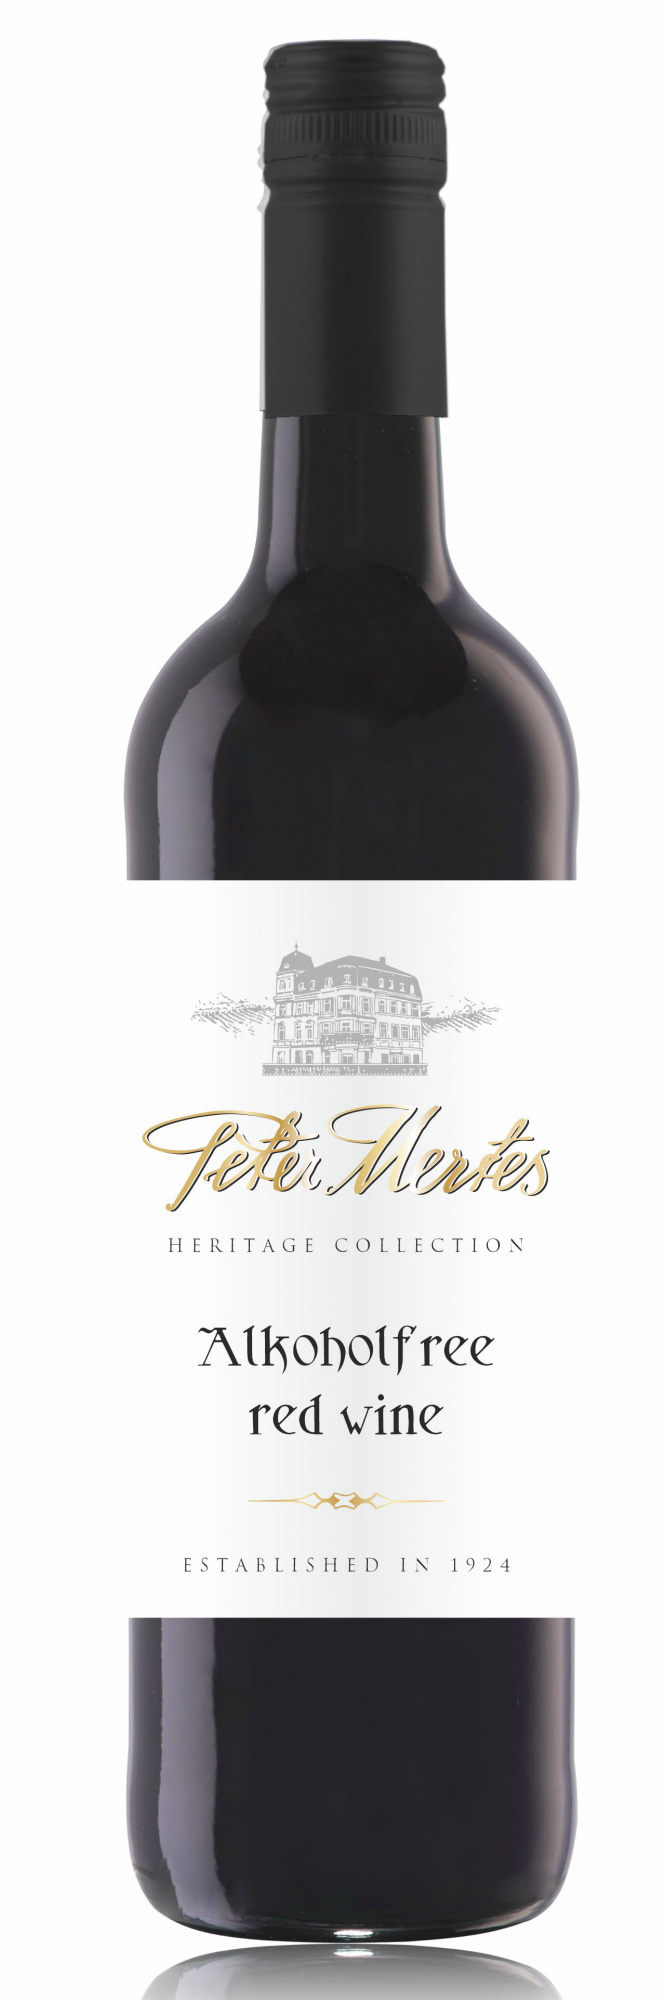 """Peter Mertes"" Alcoholfree Red"